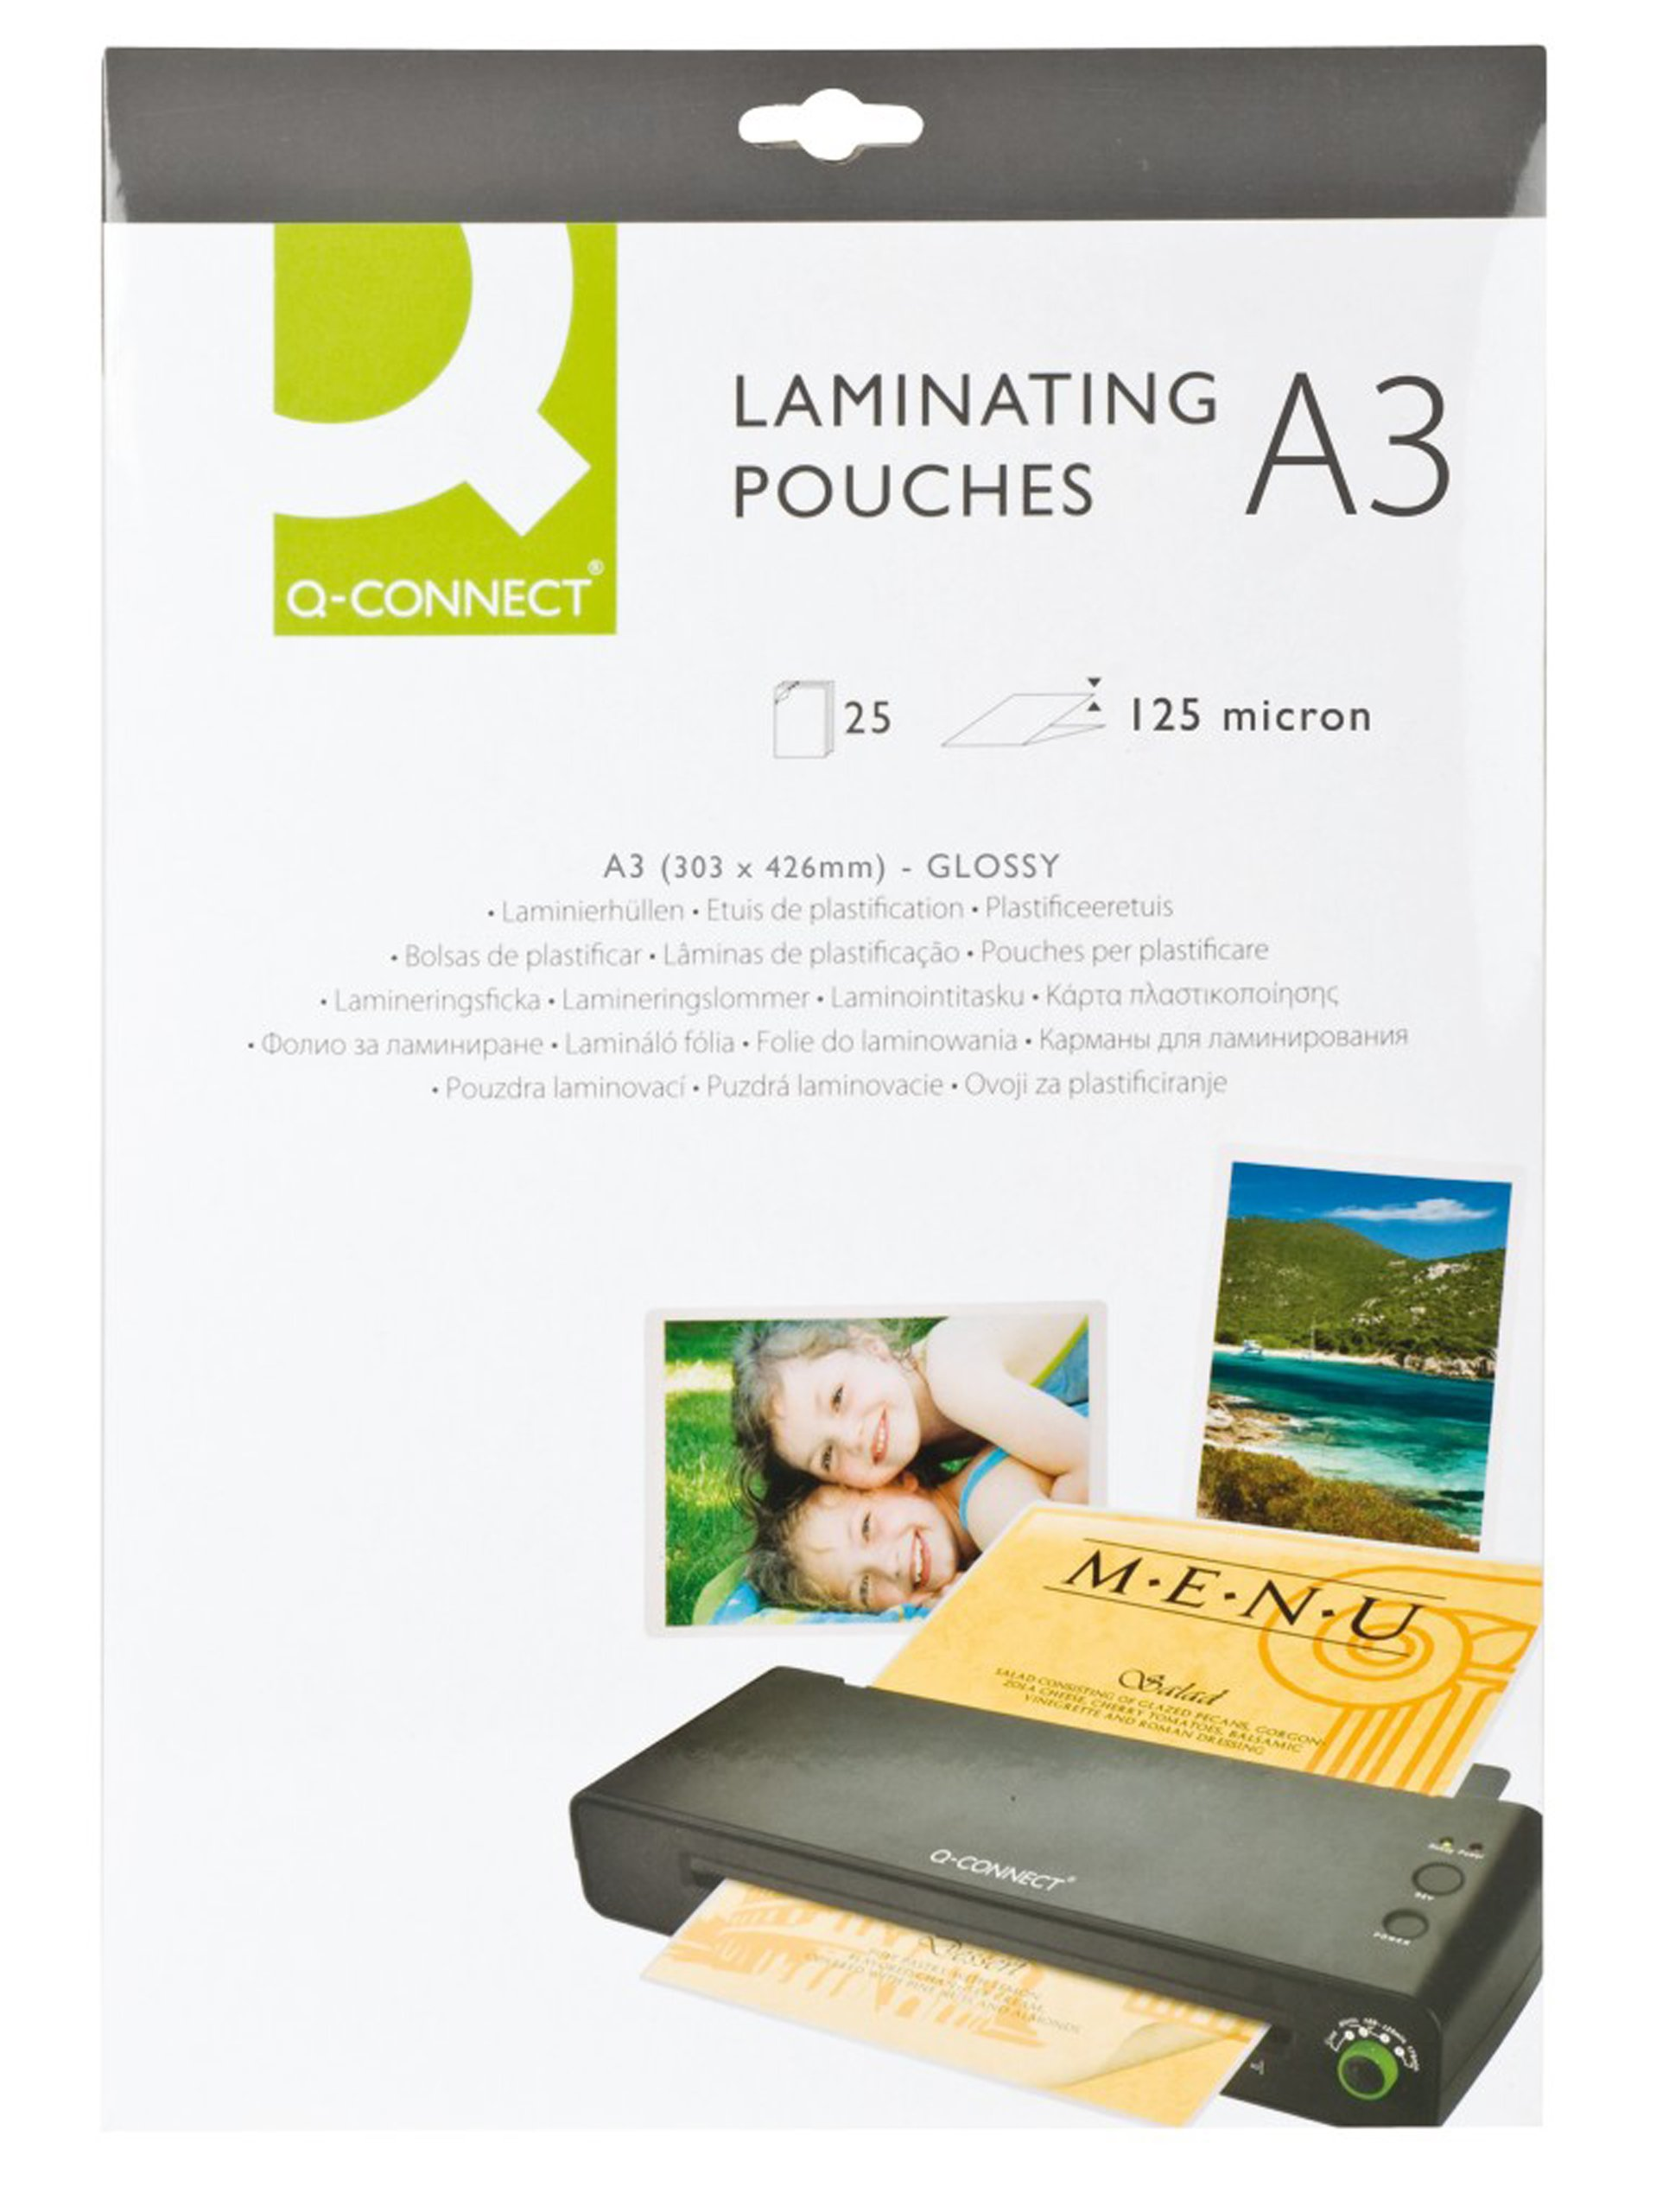 Q CONNECT LAMINATING POUCH A3 125MIC P25